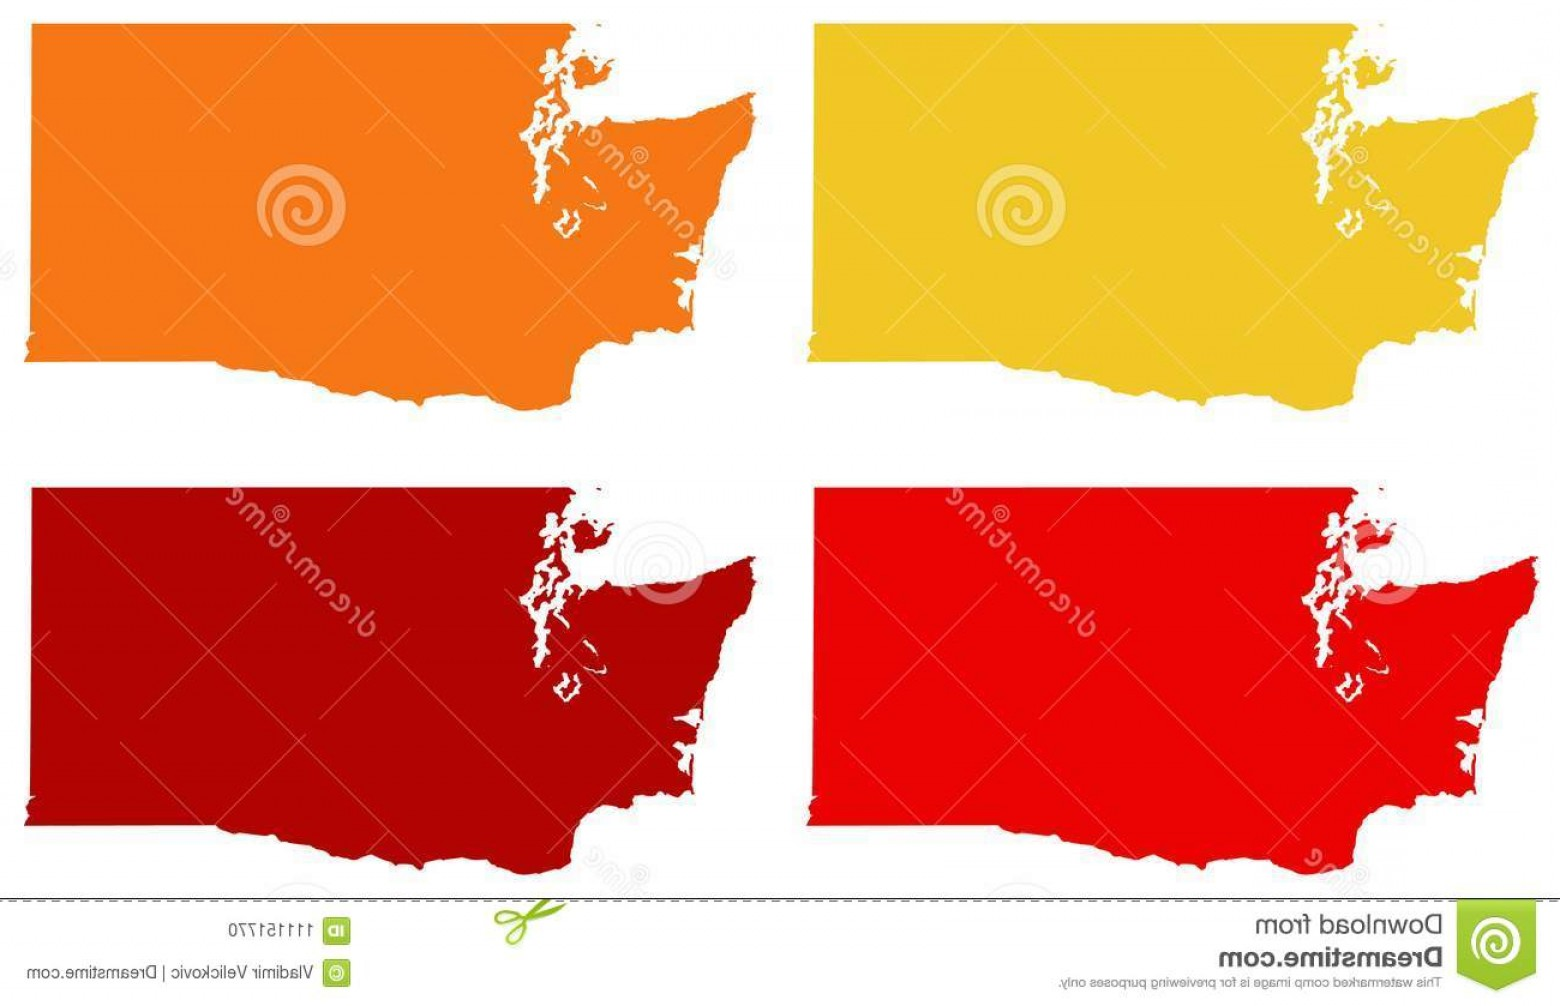 Washington State Map Vector: Vector File Washington State Map Pacific Northwest Region United States Image